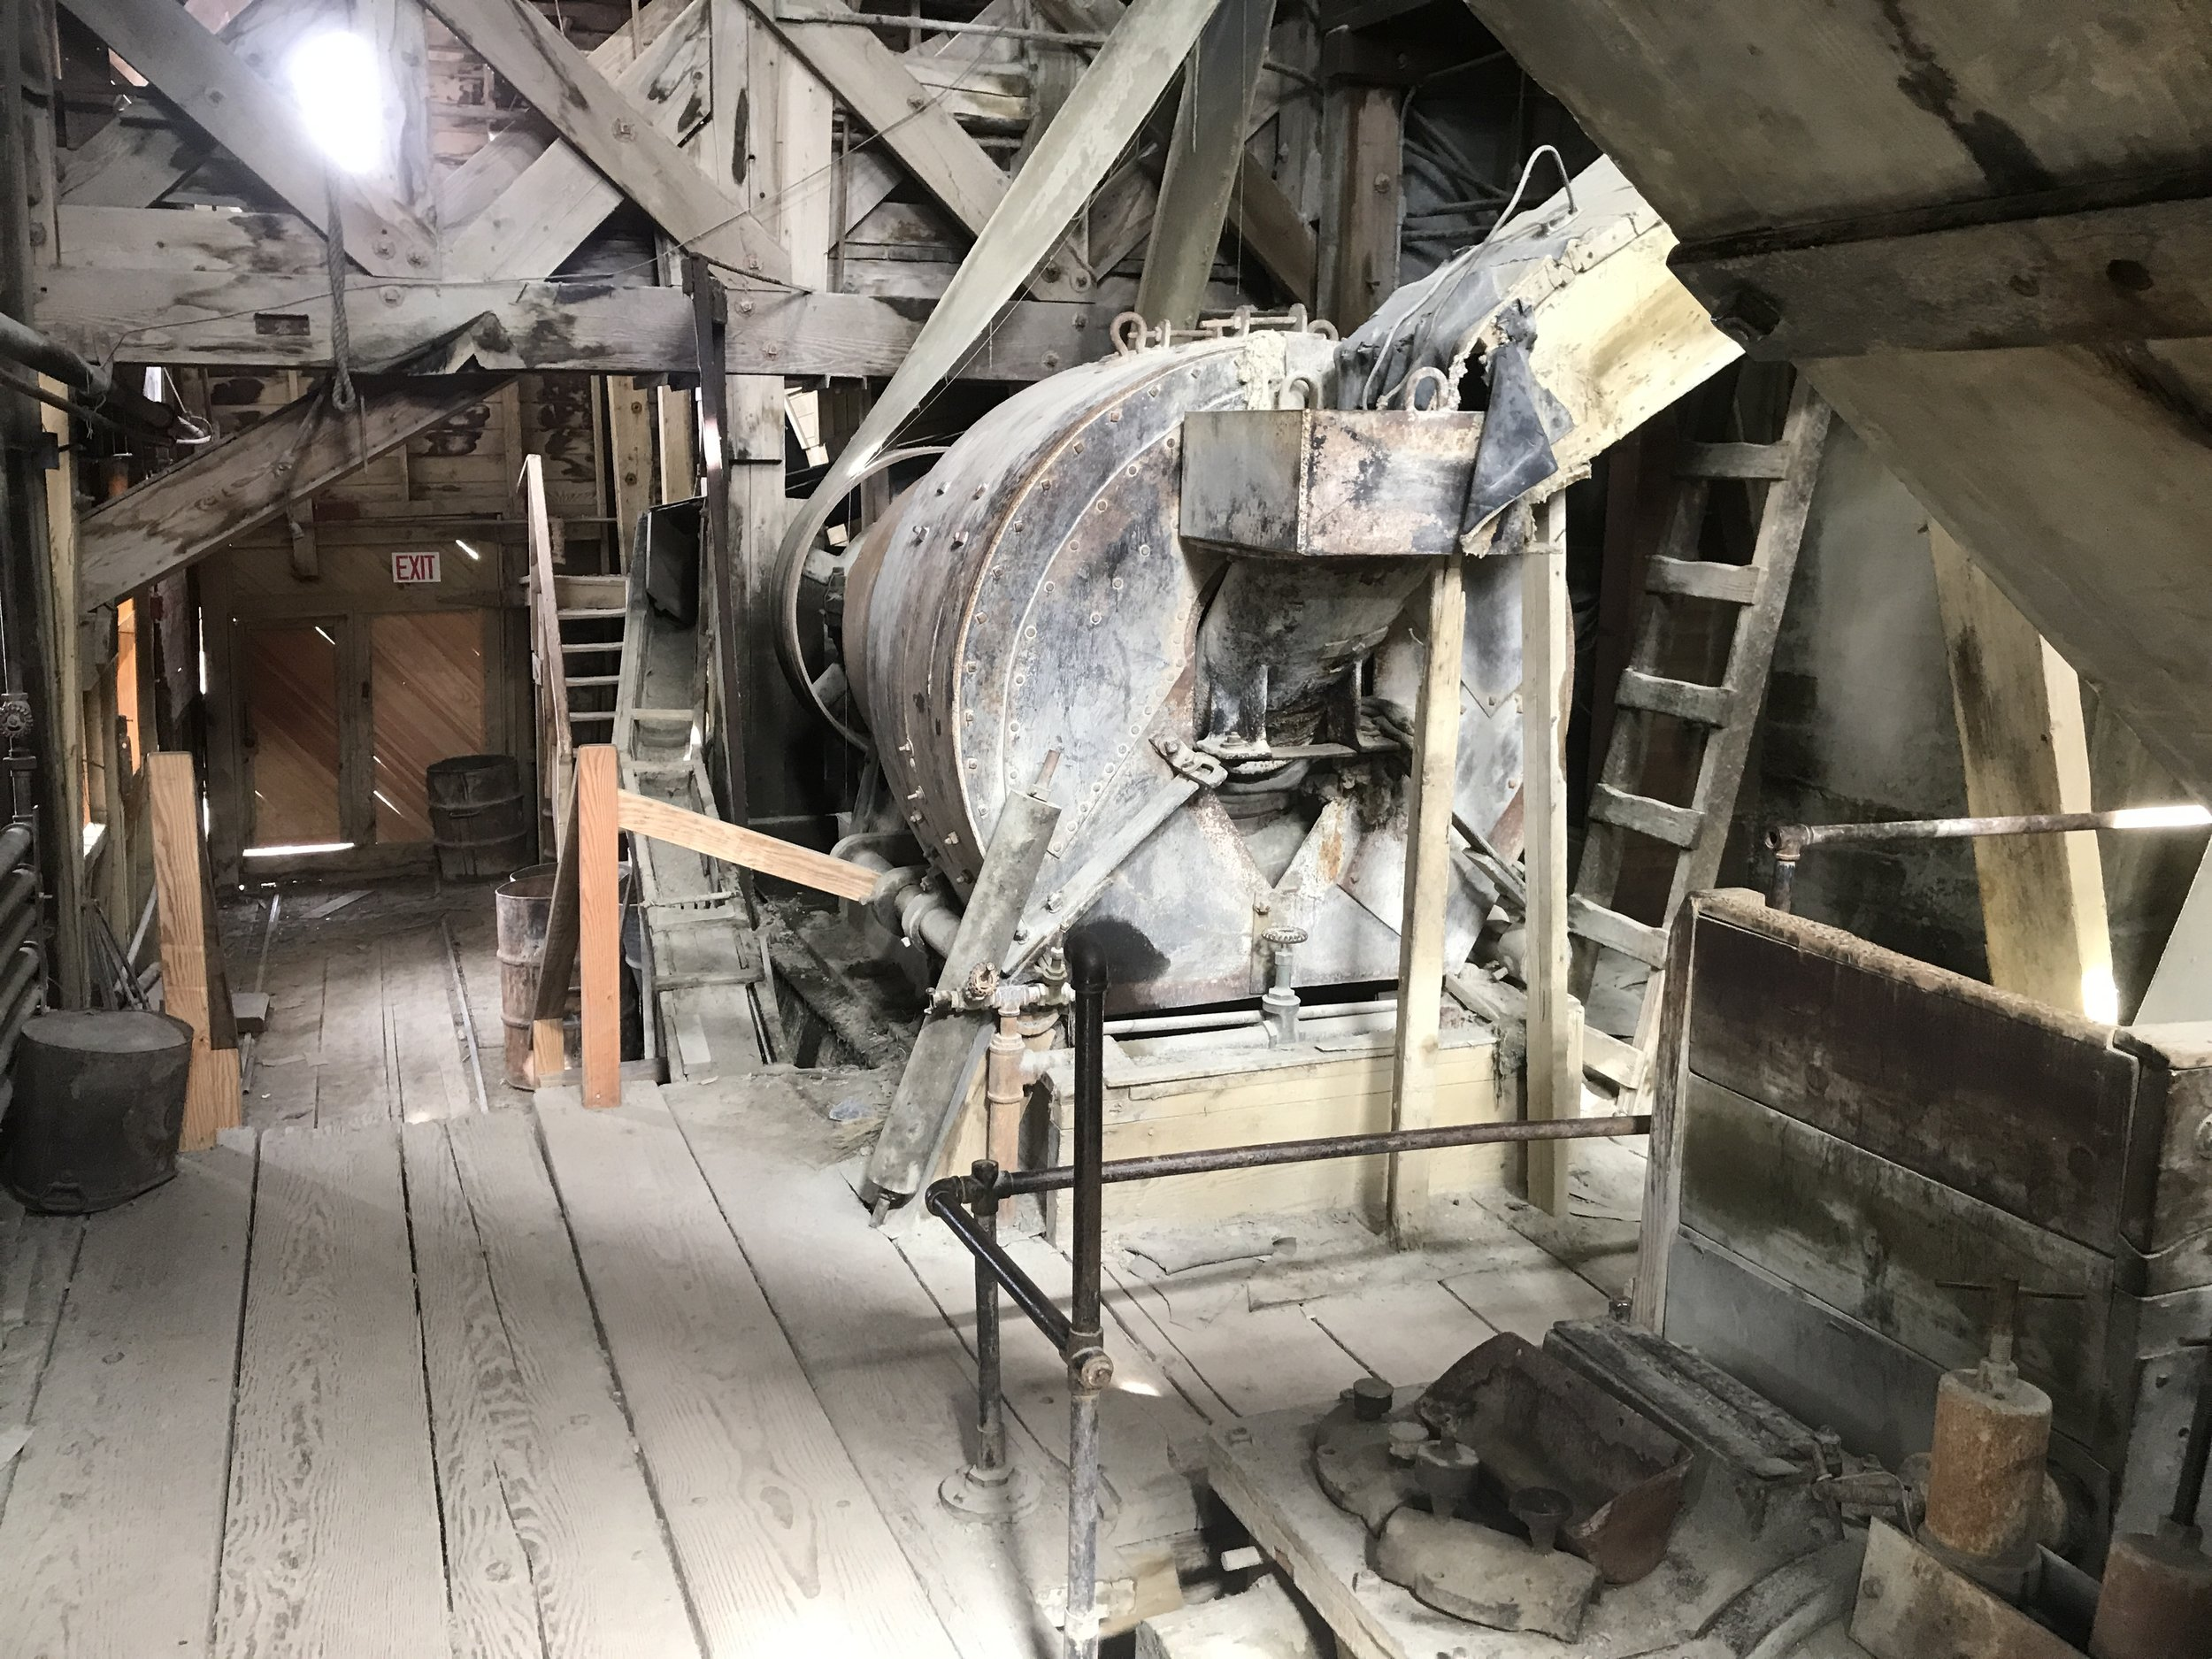 An ore crusher used to grind lower grade ore for further processing. However, some of the ore was so high grade that it needed no processing. Our guide said that high grade ore from the mines was sometimes over 60% copper.